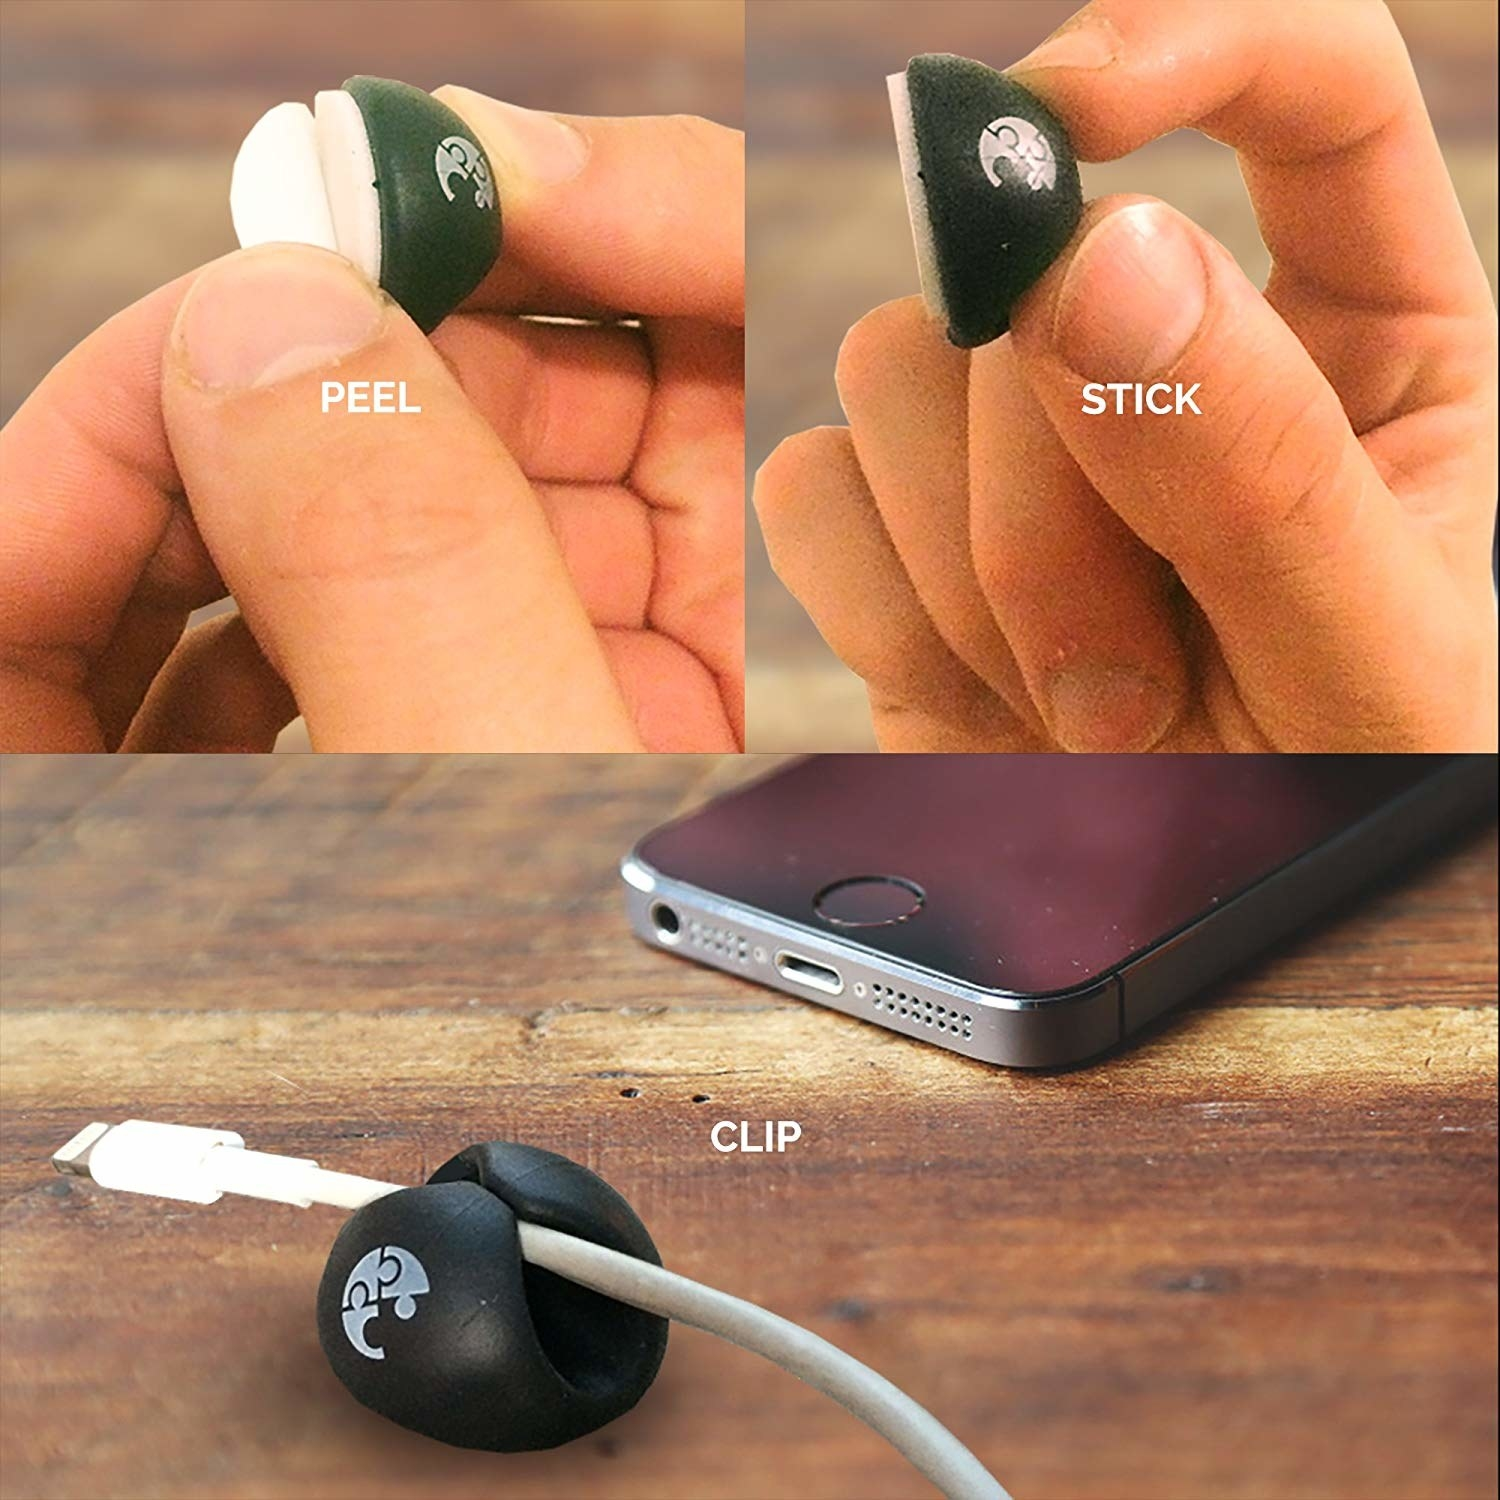 small disc-like cable holders that grip onto thin cables like phone chargers